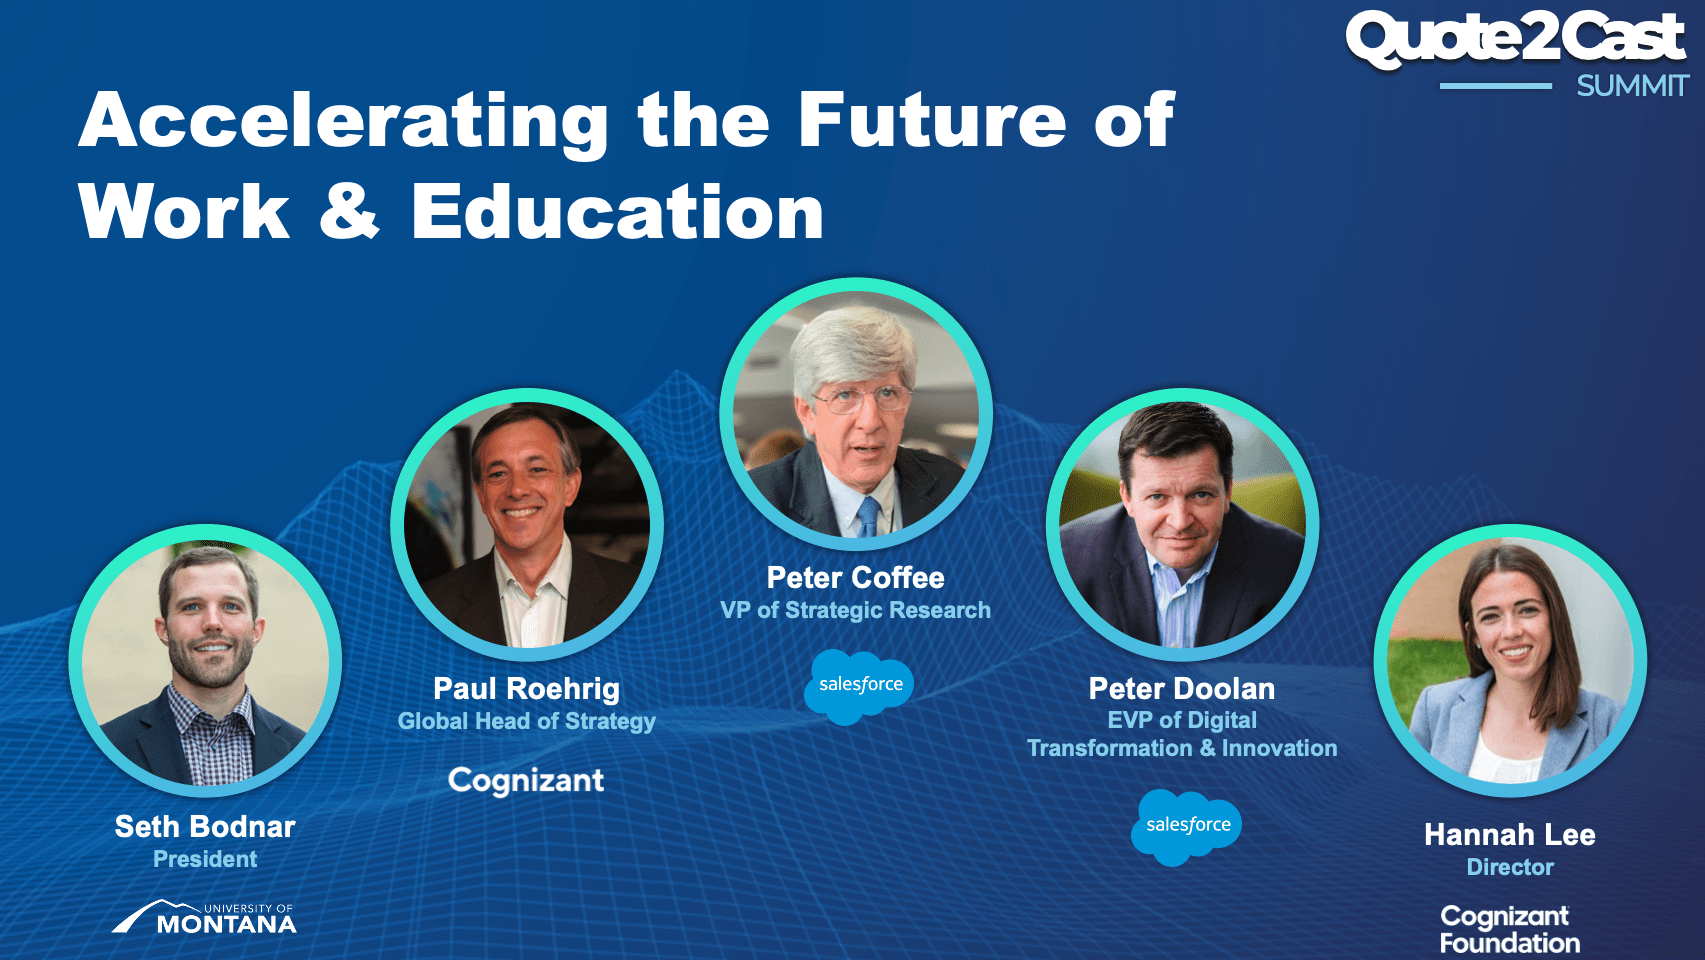 Q2Cast 2021: Accelerating the Future of Work & Education